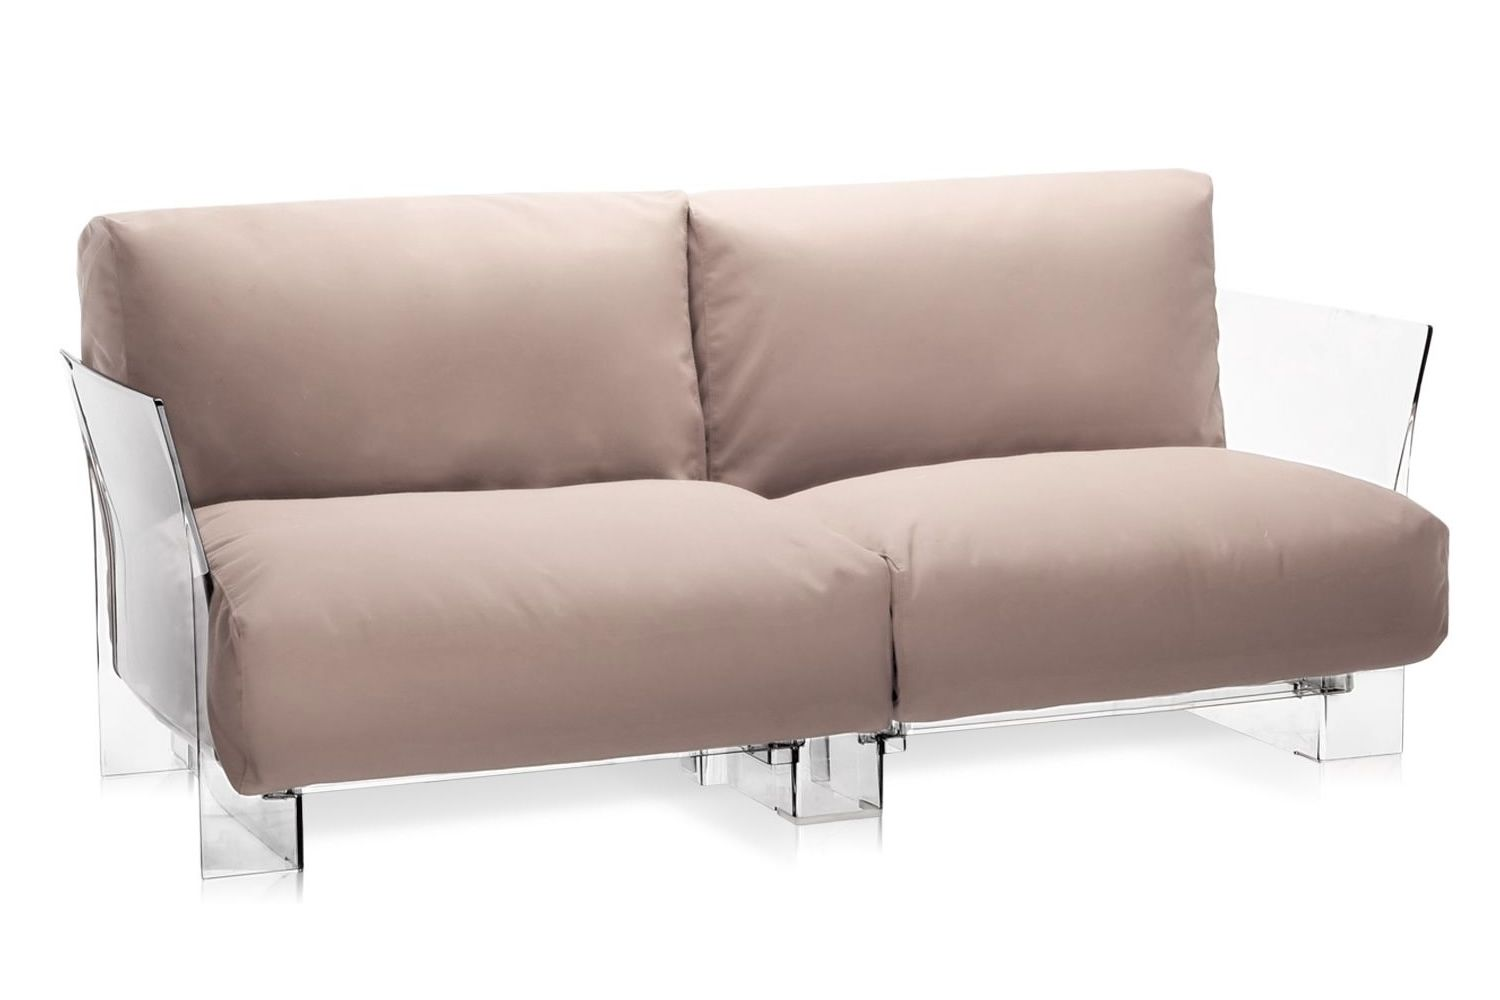 Pop Outdoor Sofa - Divano di design Kartell, per esterno, 2 posti ...